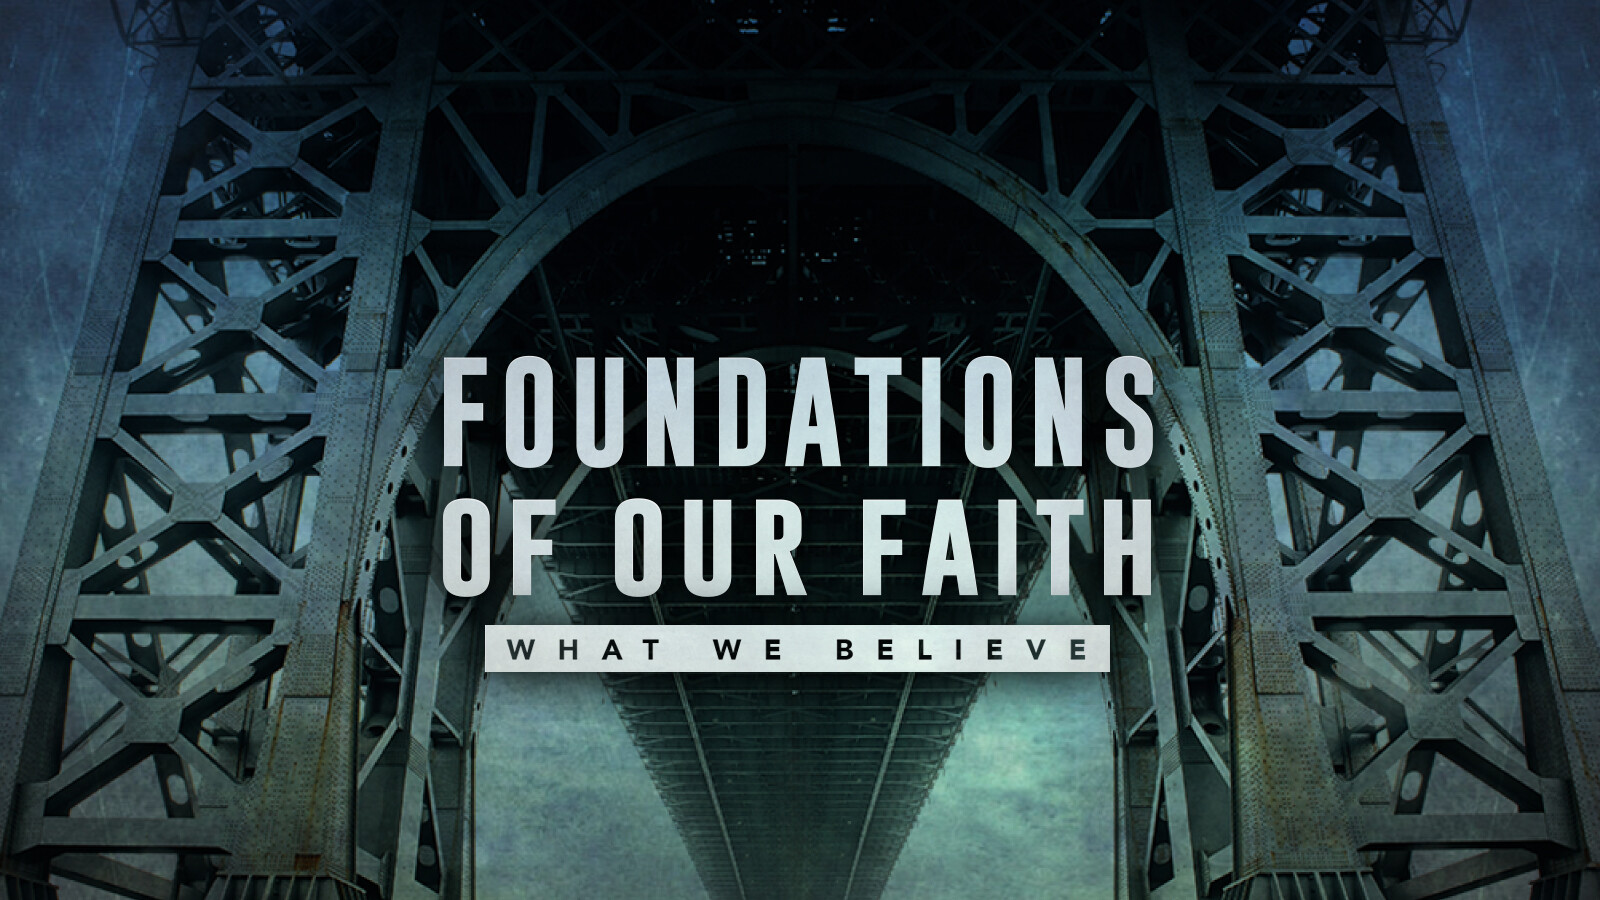 Foundations: What We Believe